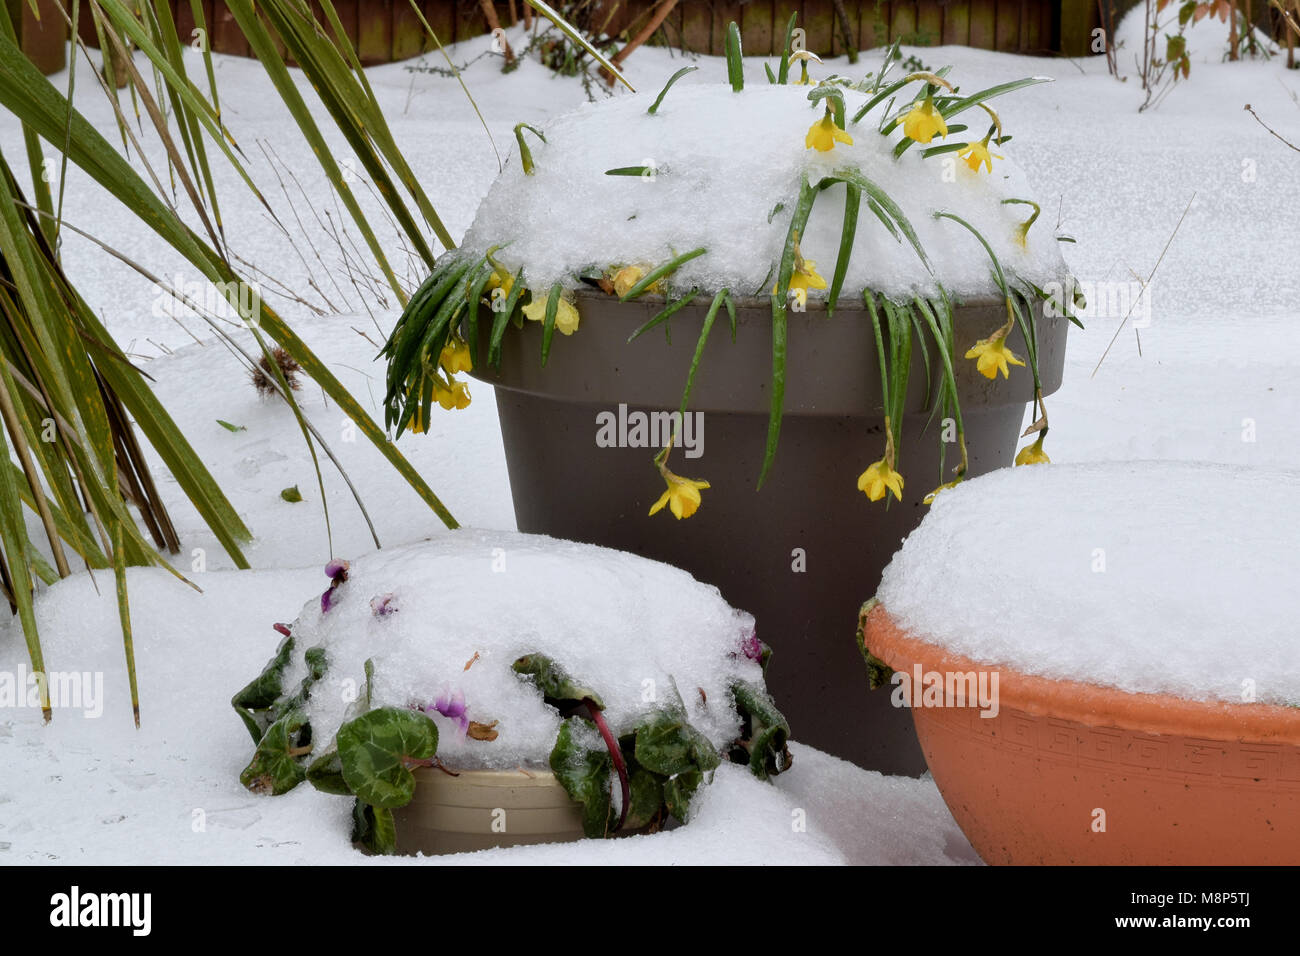 Snow covering spring flowers in garden pots - Stock Image